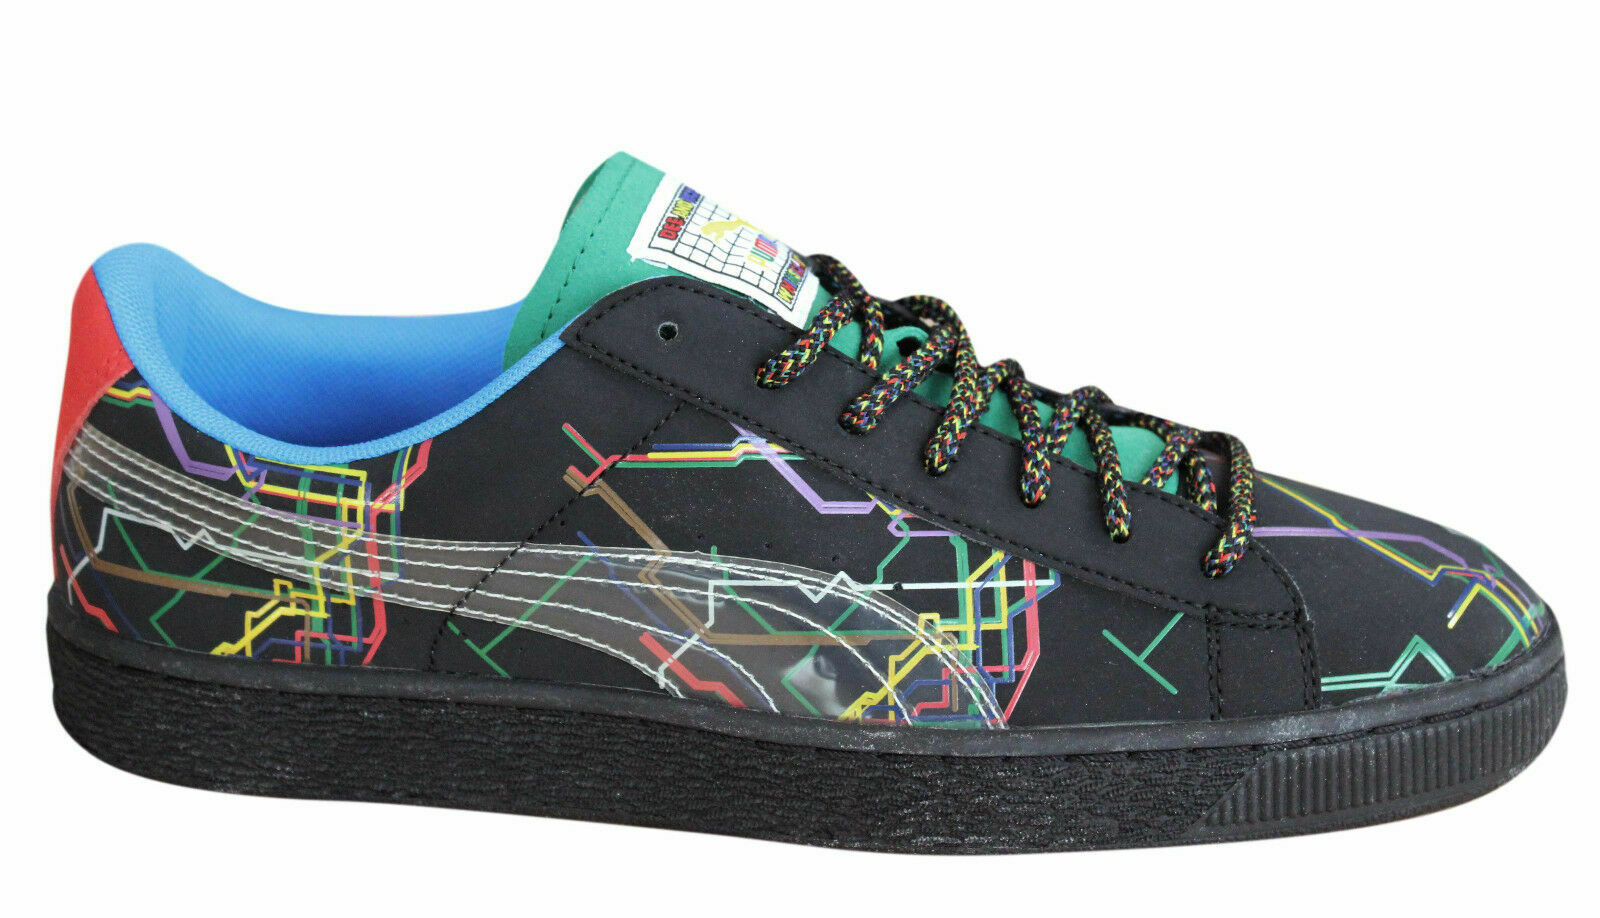 17cb6bffb3a Puma Basket x Dee   Ricky Mens Trainers Lace Up Shoes Black 361498 01 P2 1  of 2 See More